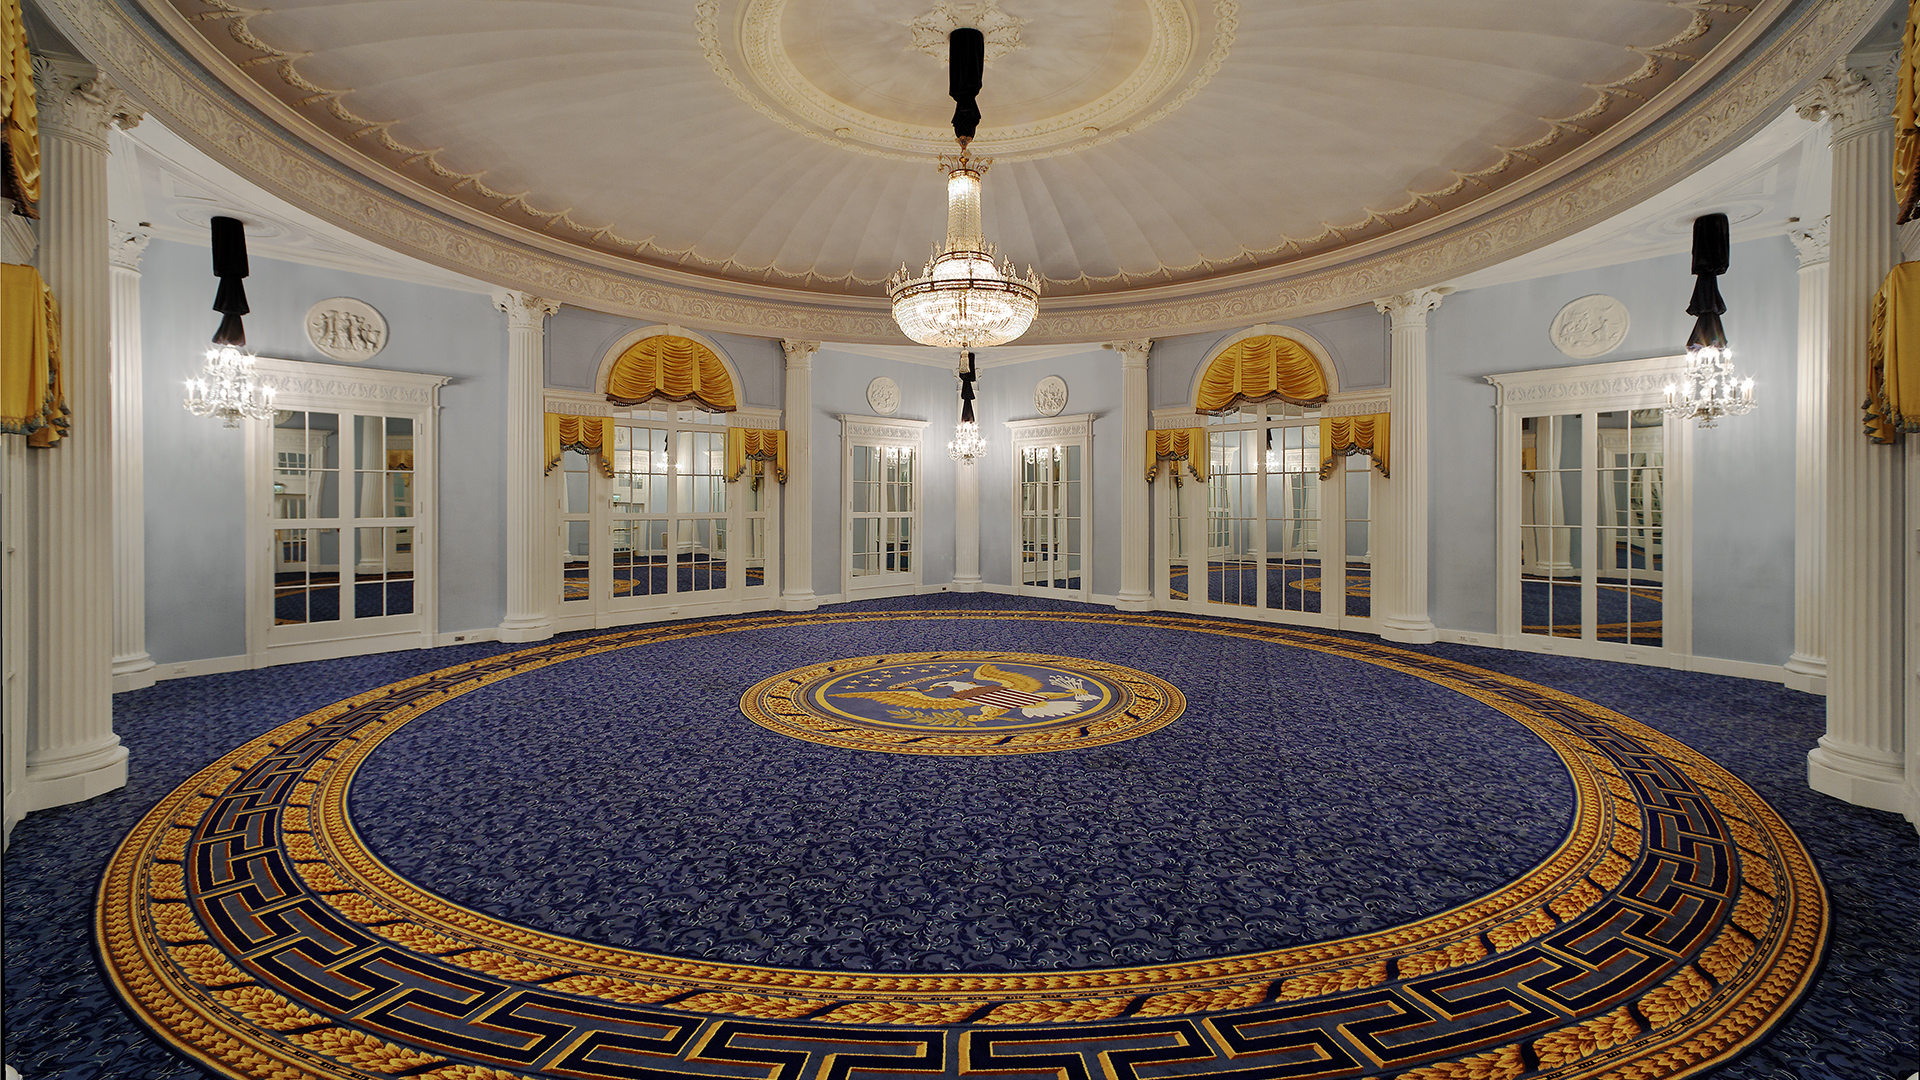 Rooms: Gerald R. And Betty Ford Presidential Ballroom